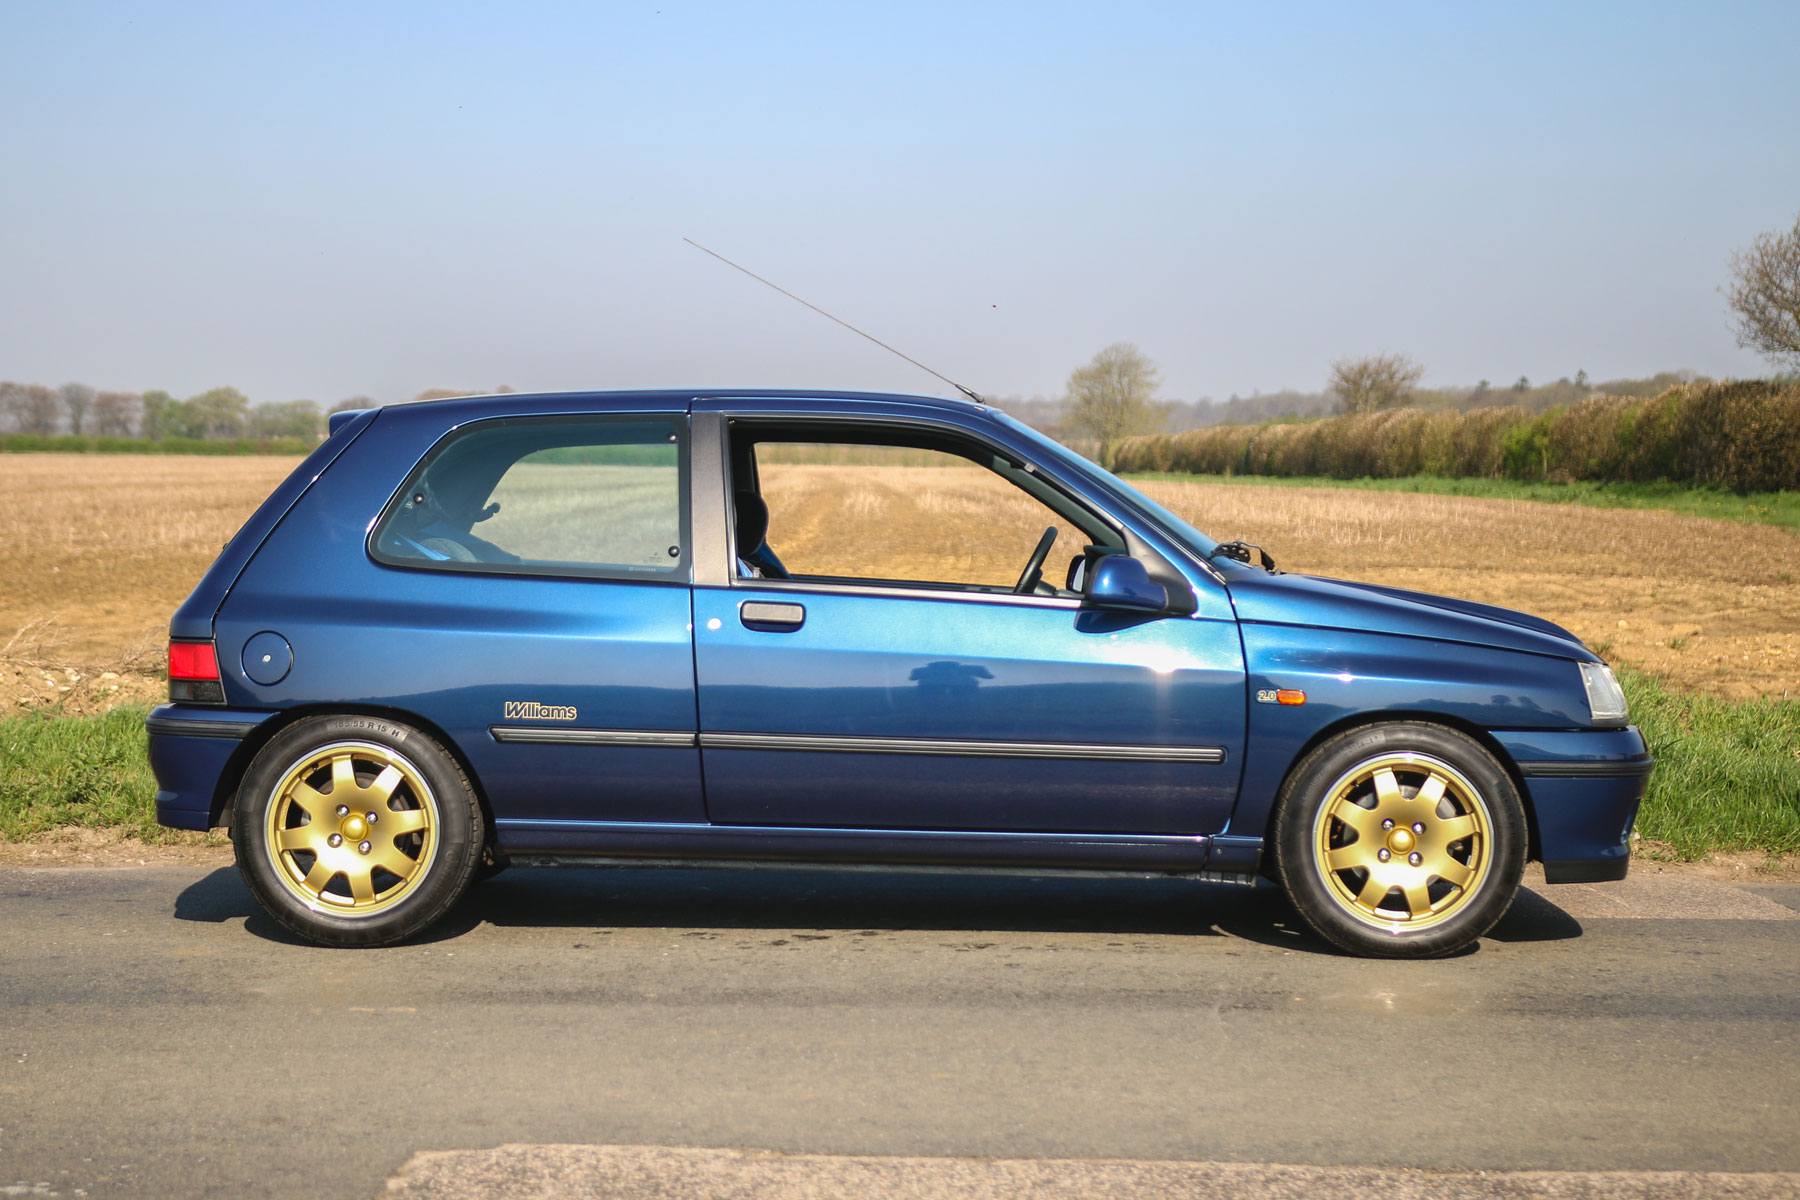 Renault Clio Williams Review: The Perfect Pocket-rocket